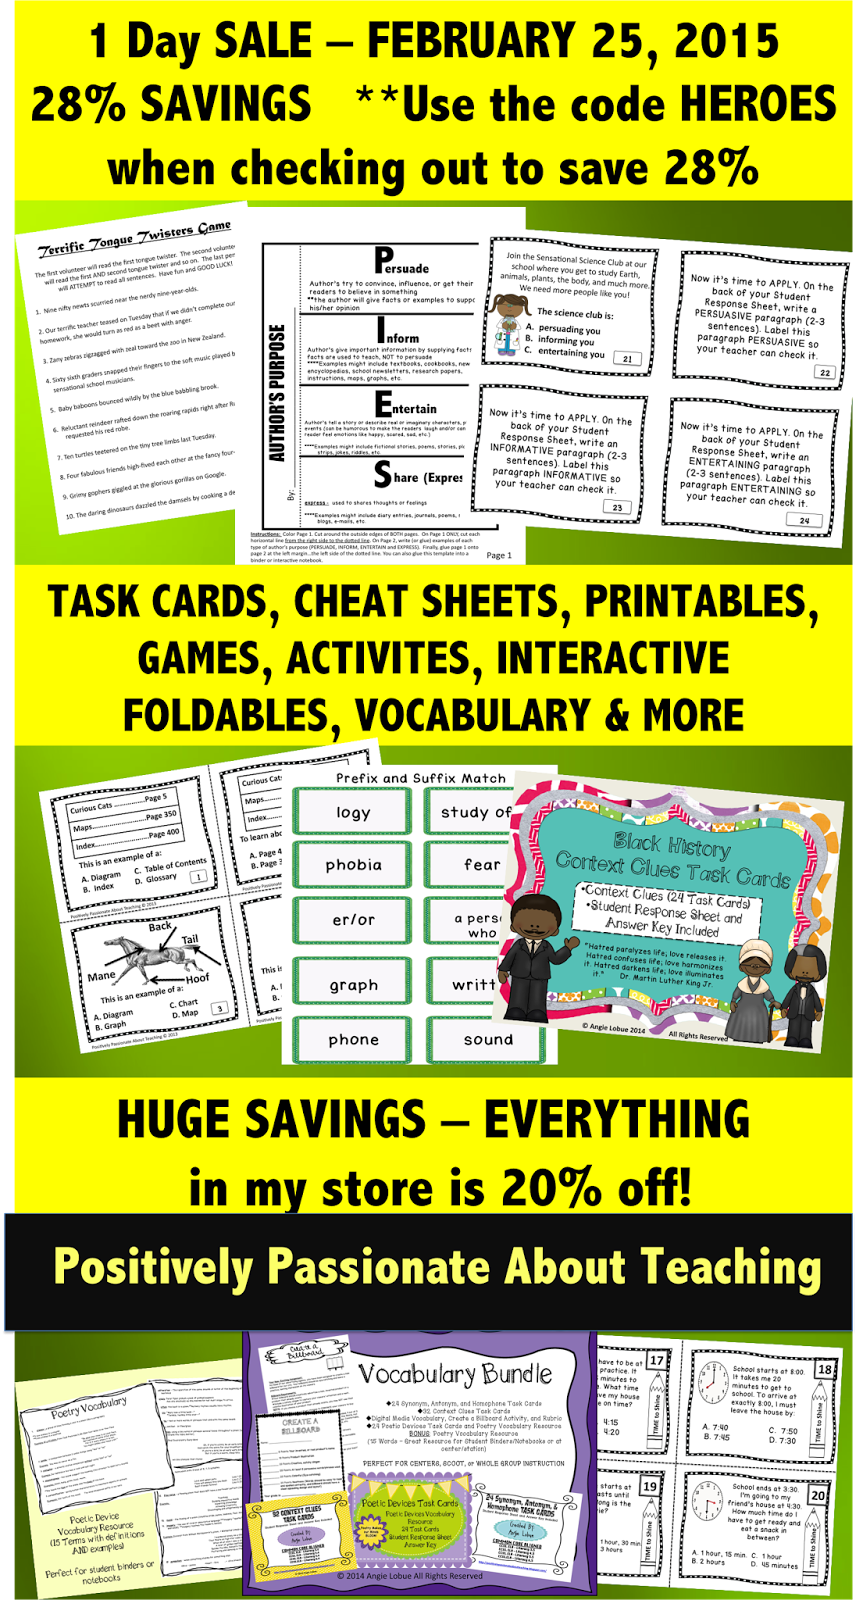 http://www.teacherspayteachers.com/Store/Positively-Passionate-About-Teaching